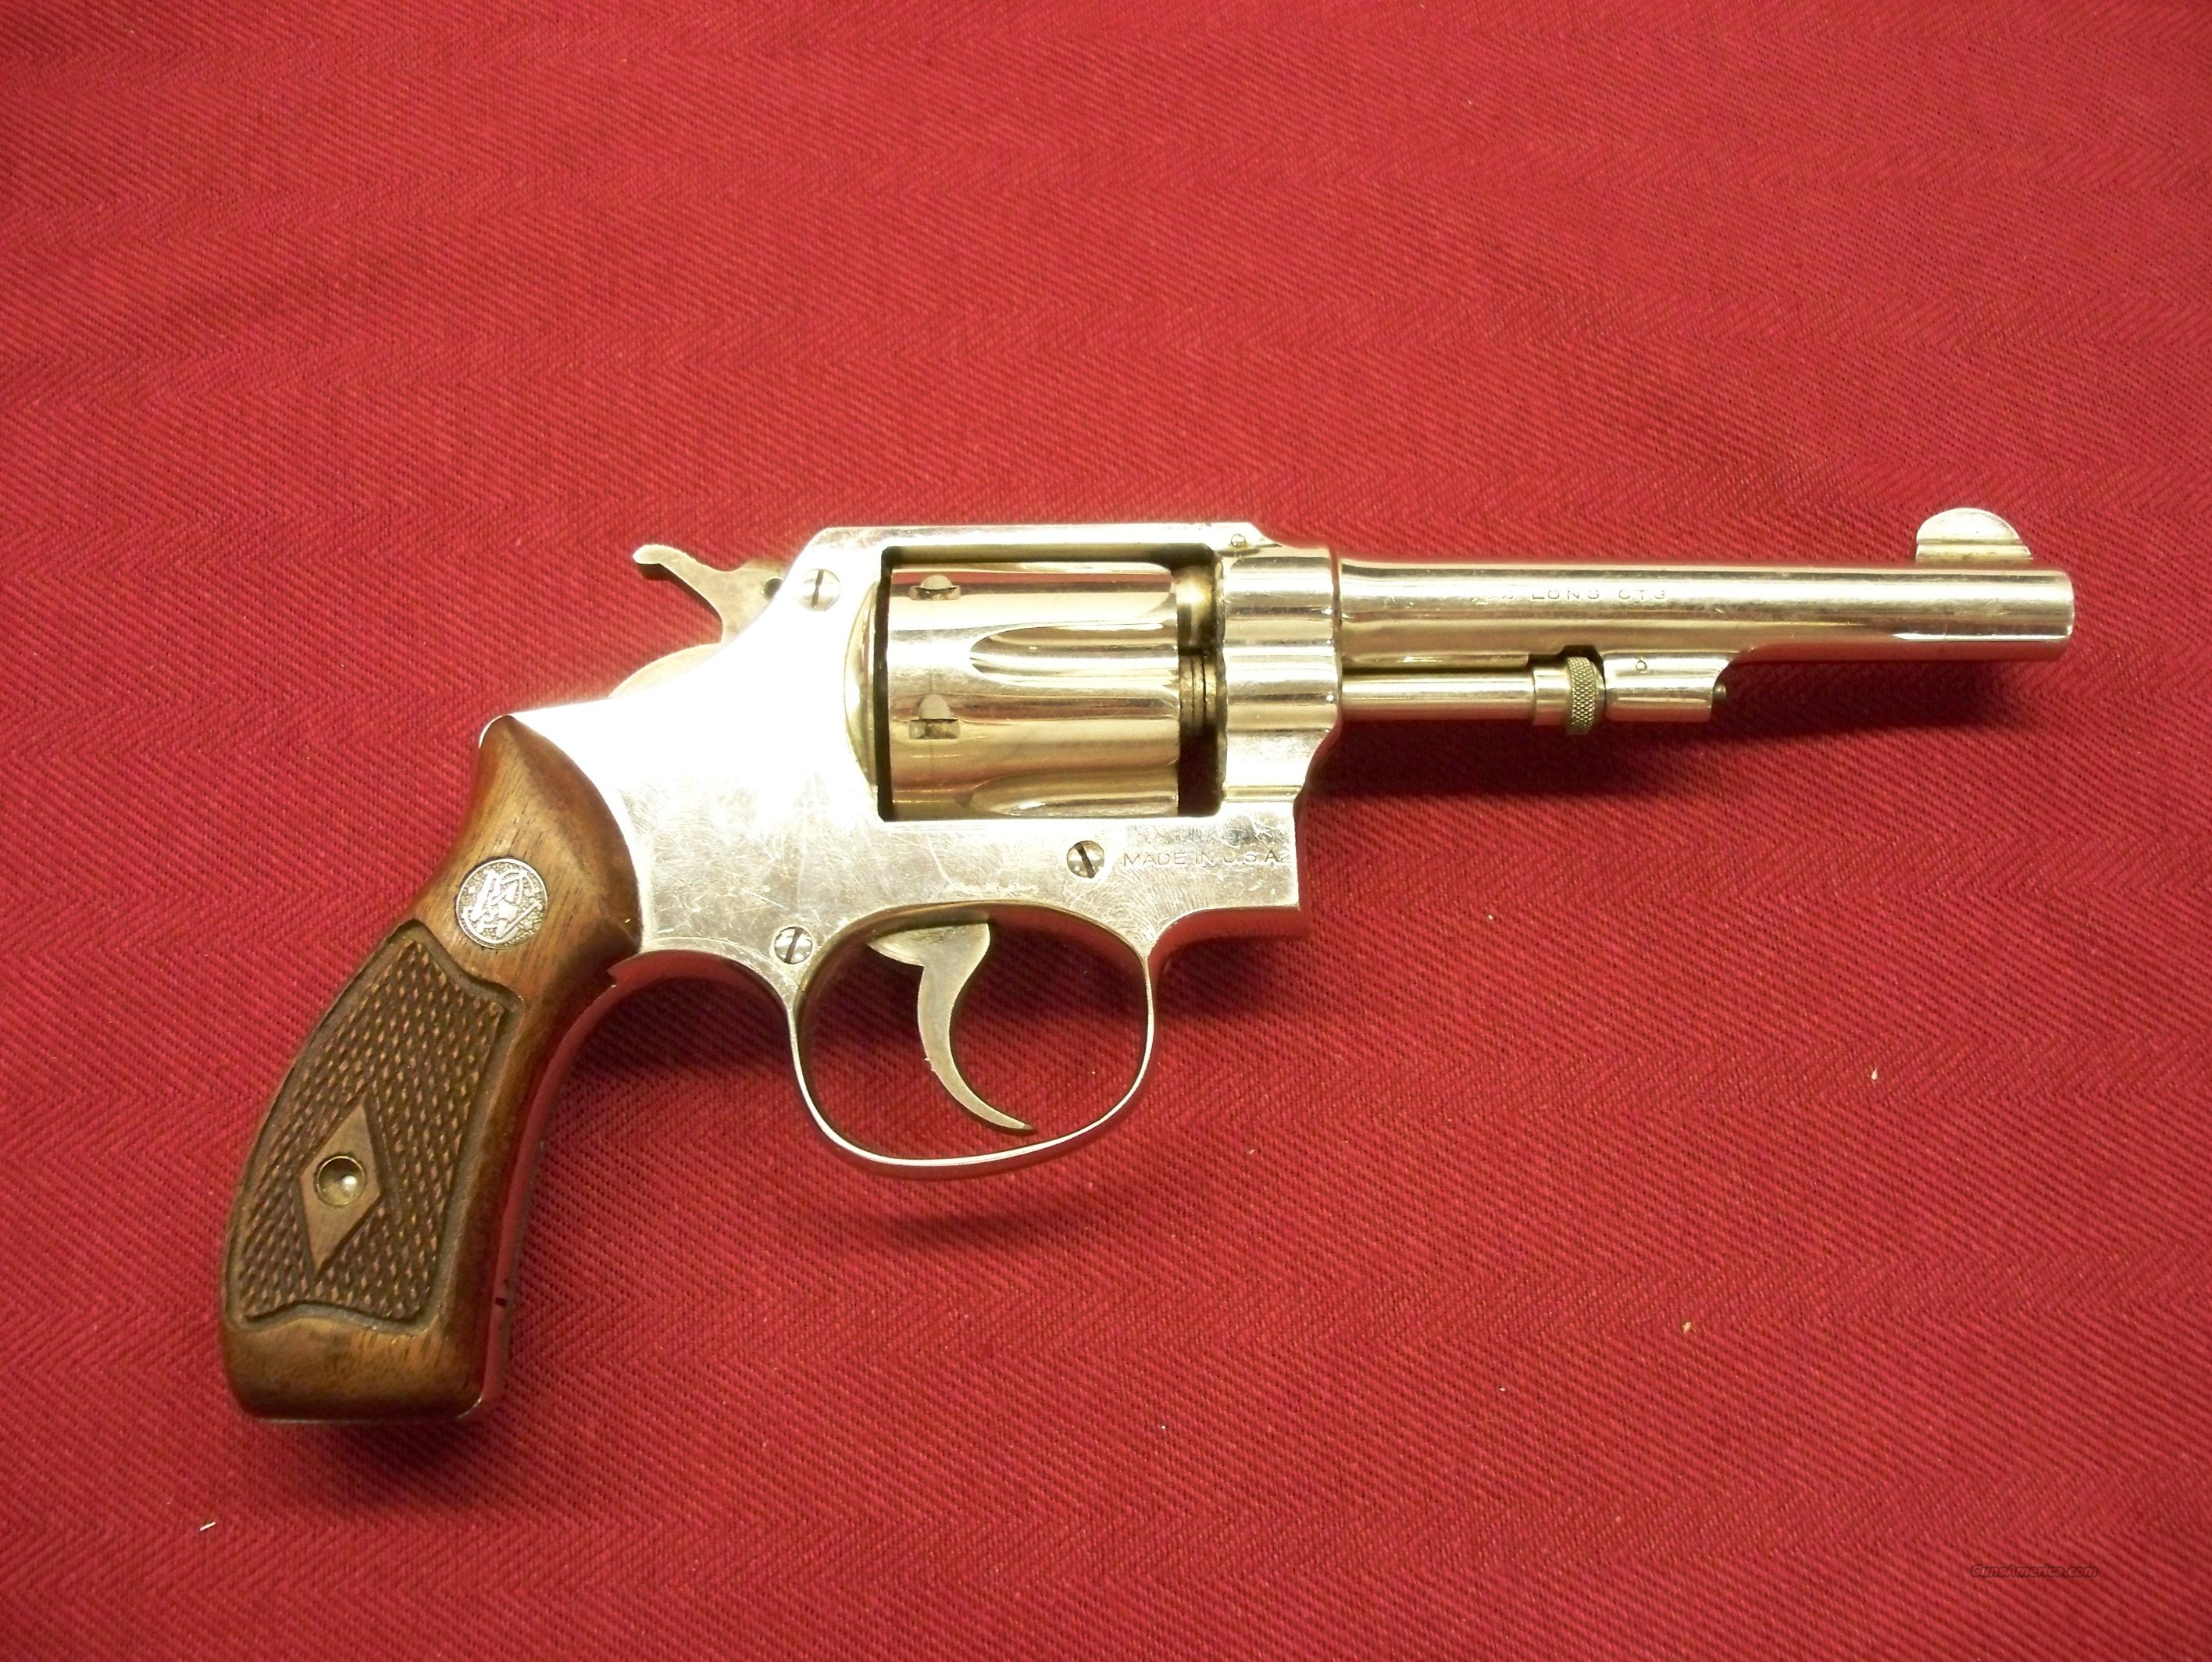 Smith & Wesson Hand Ejector 3rd Model .32 S&W Long caliber Revolver  Guns > Pistols > Smith & Wesson Revolvers > Pre-1945